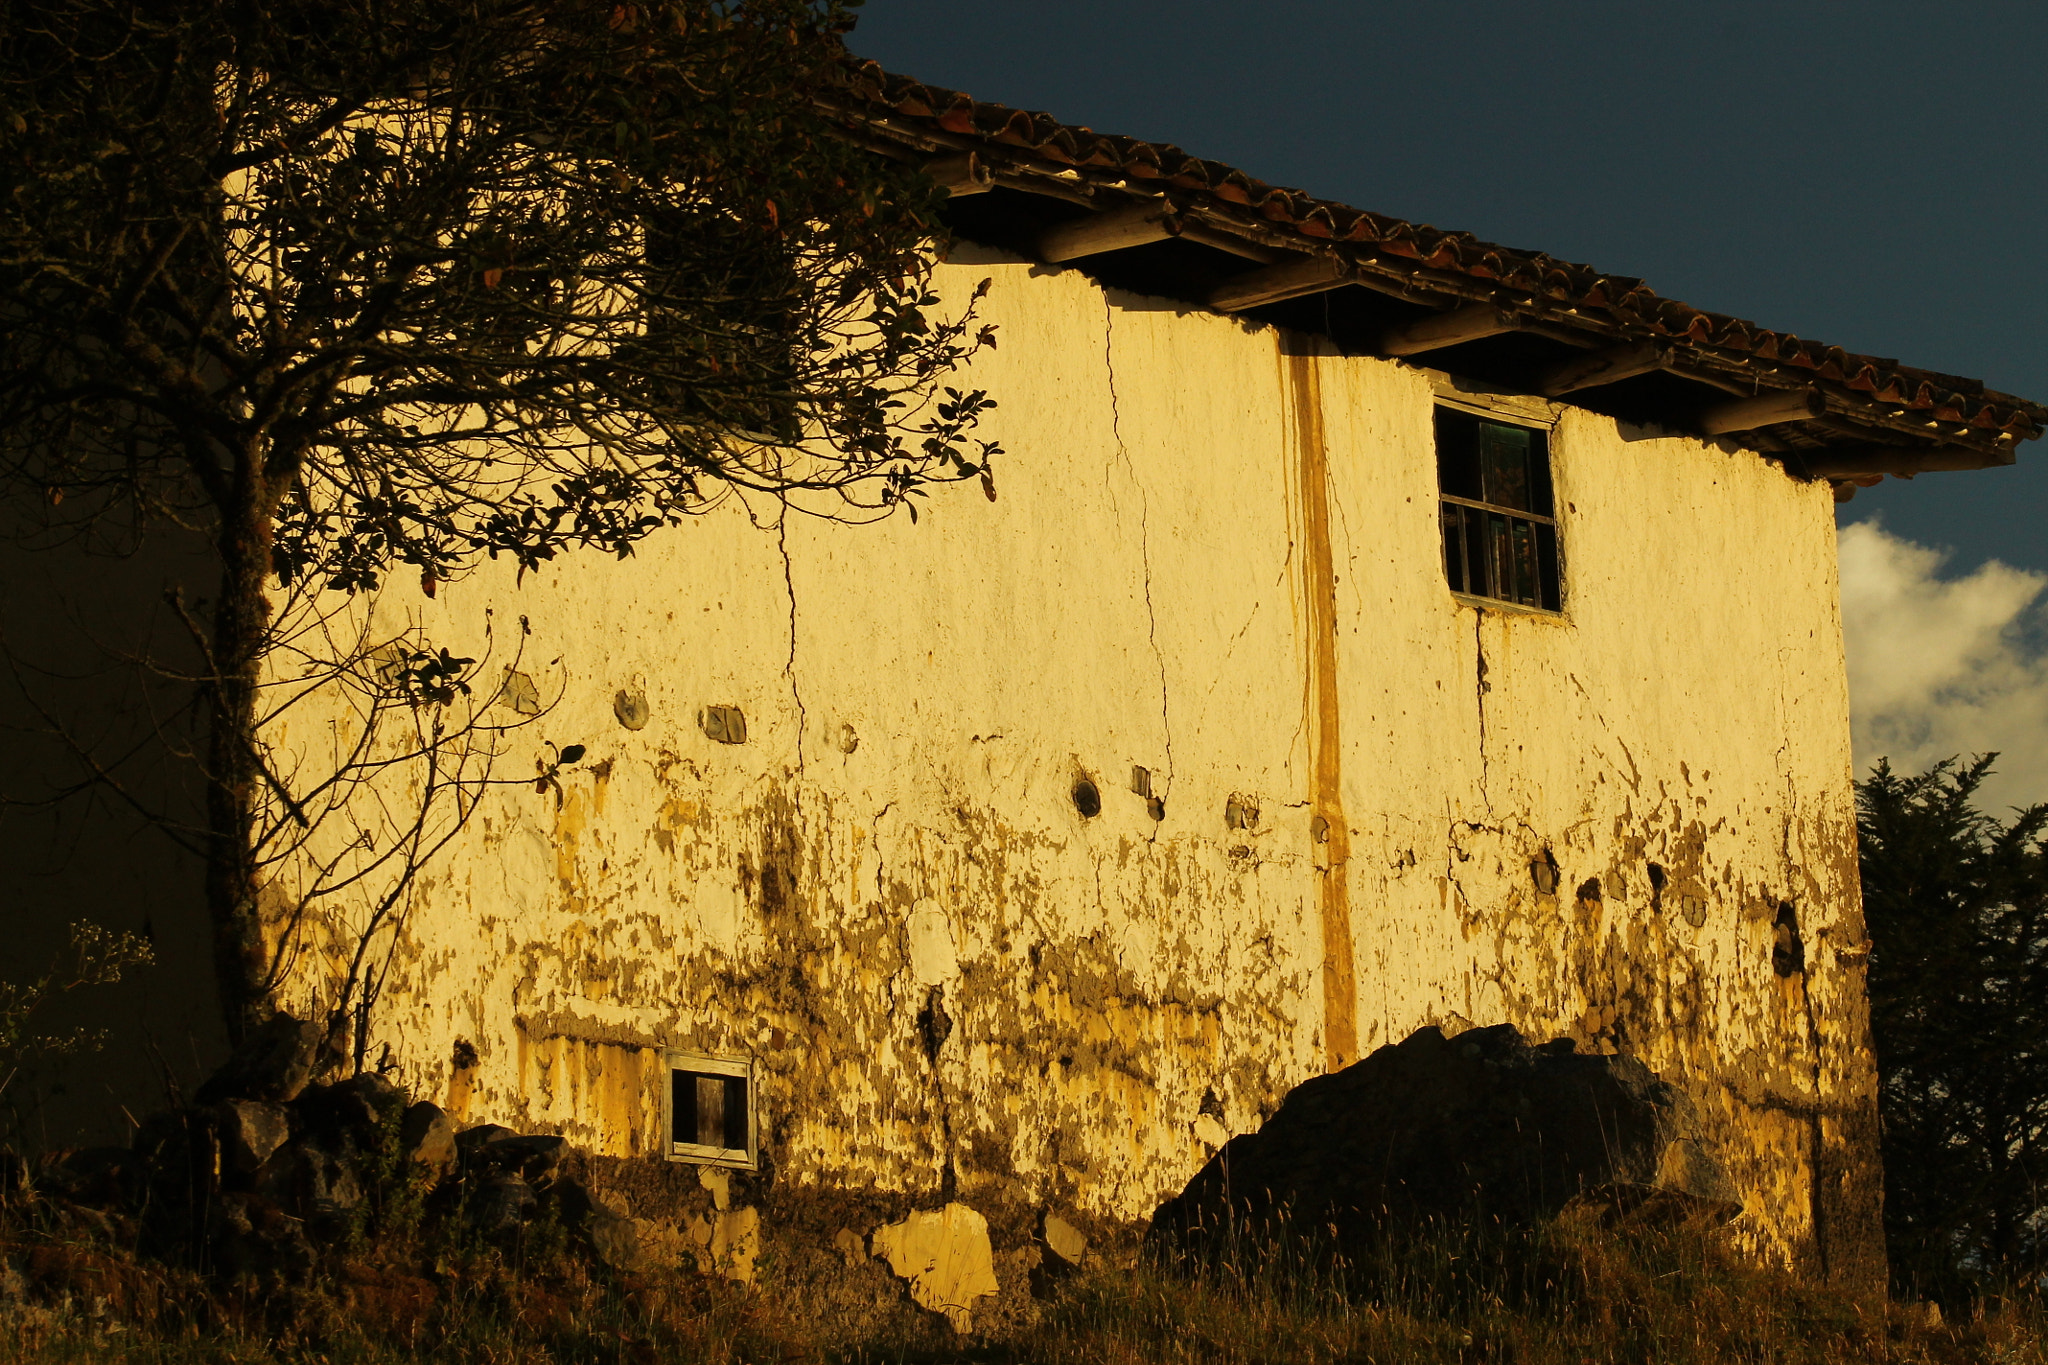 Photograph The old house by Andrés GS on 500px